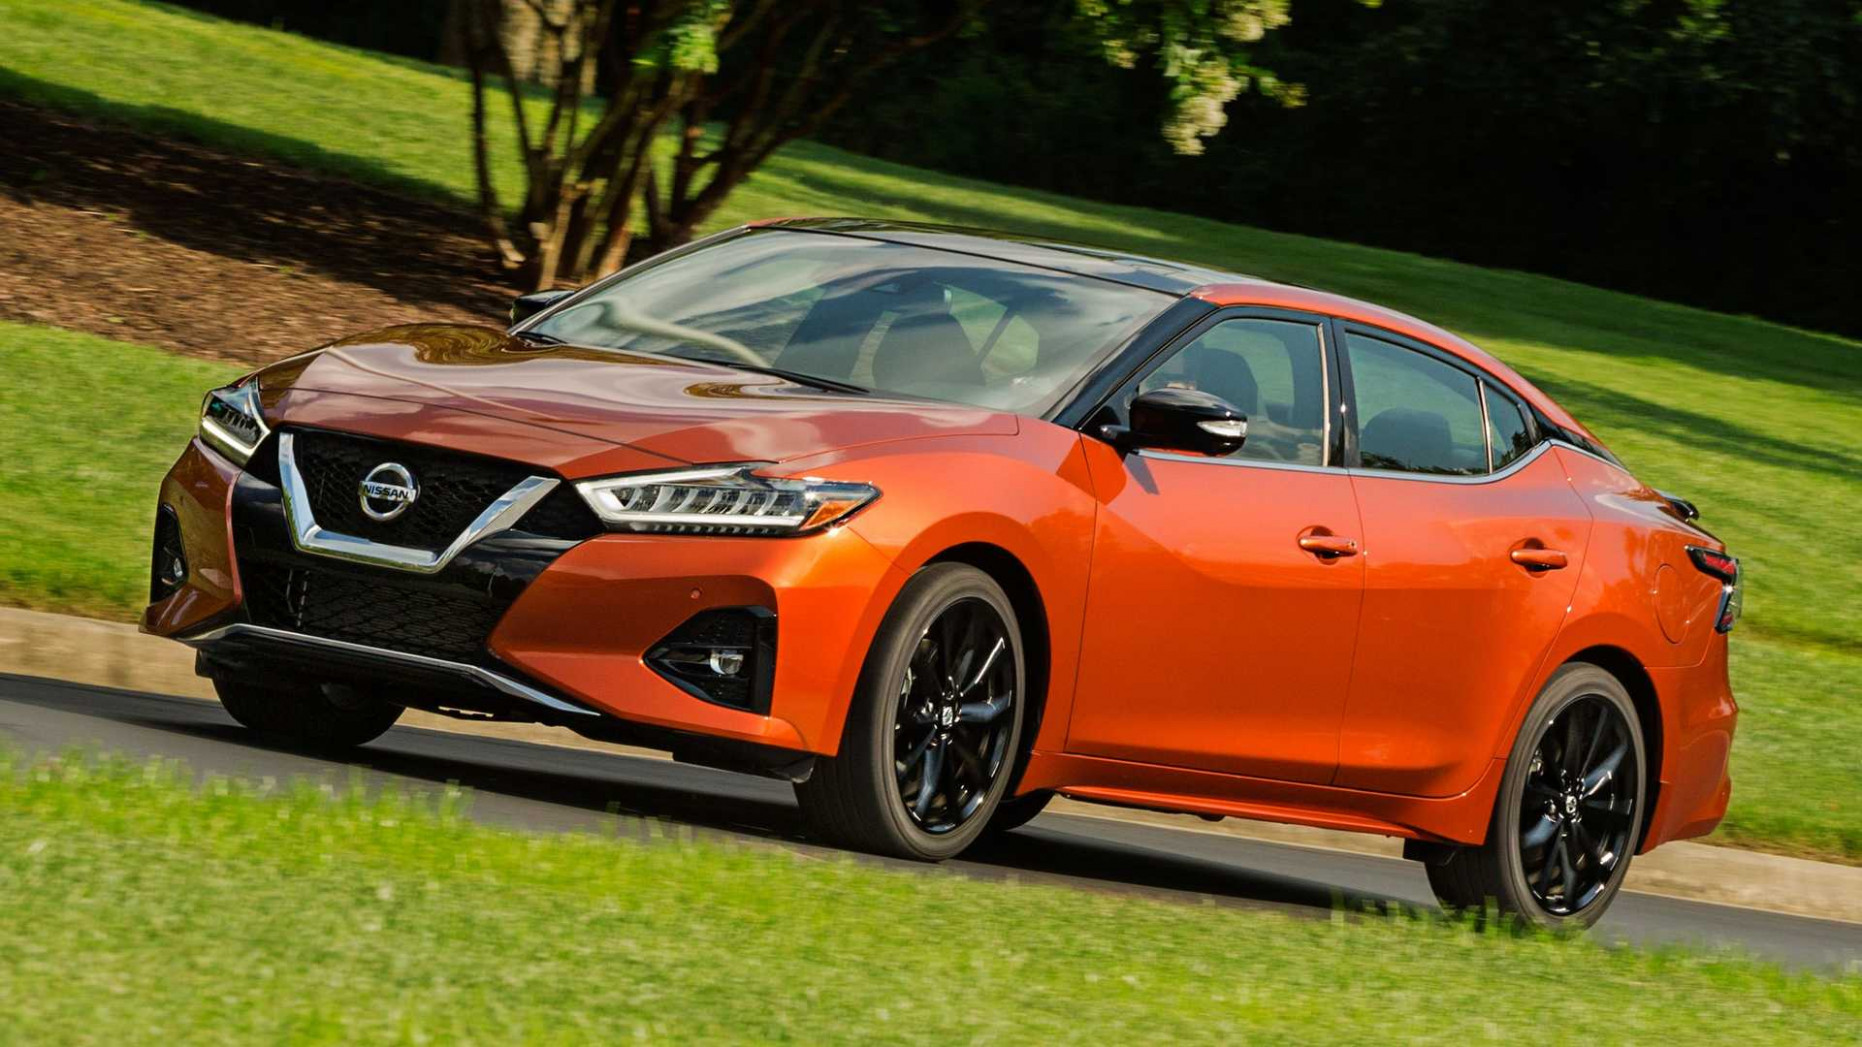 Engine 2022 Nissan Maxima Release Date